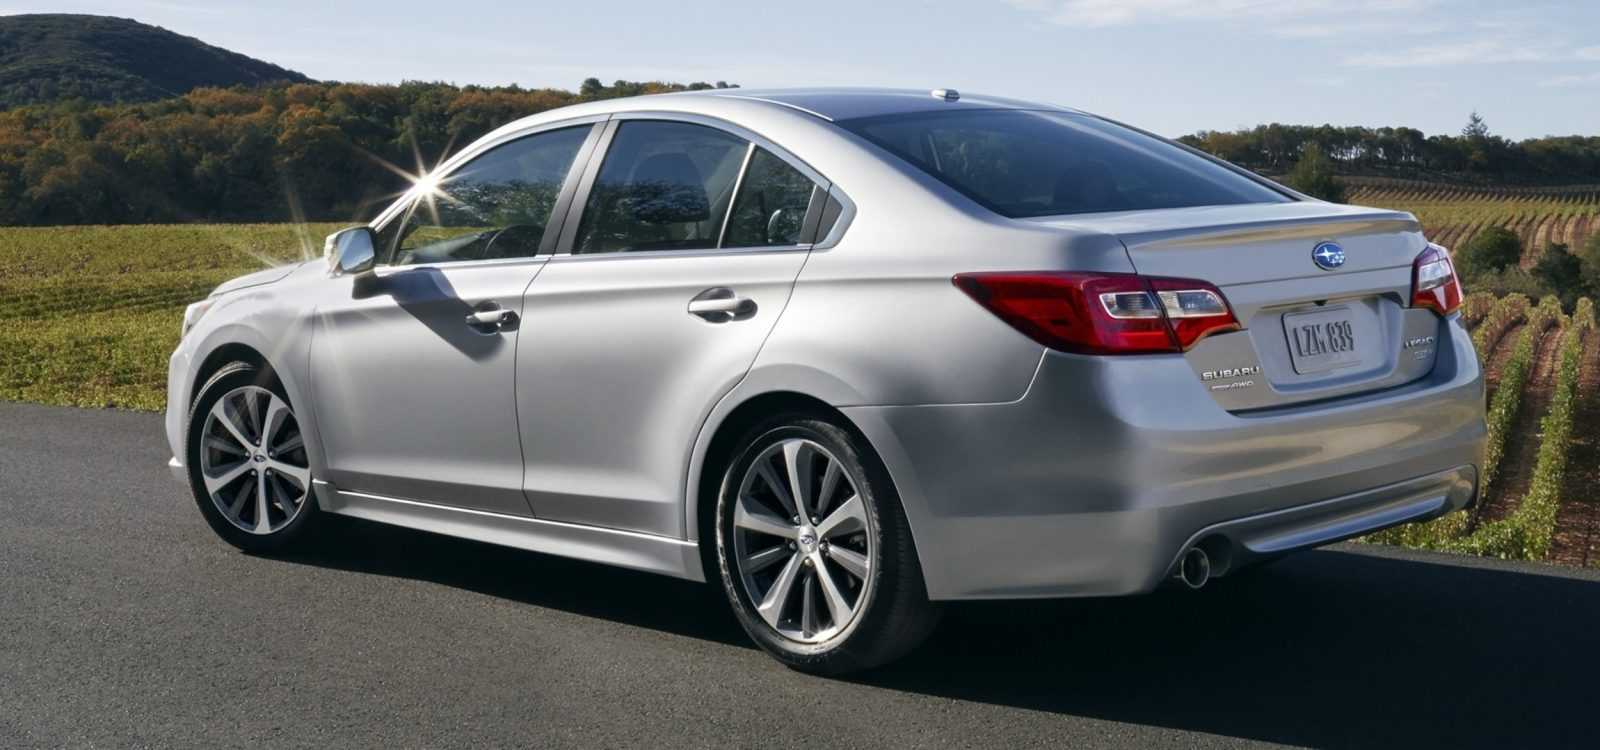 2015 Subaru Legacy Sedan -- More Lux and Tech in Cabin -- Finally Some Exterior Style -- Even 36MPG Highway  5